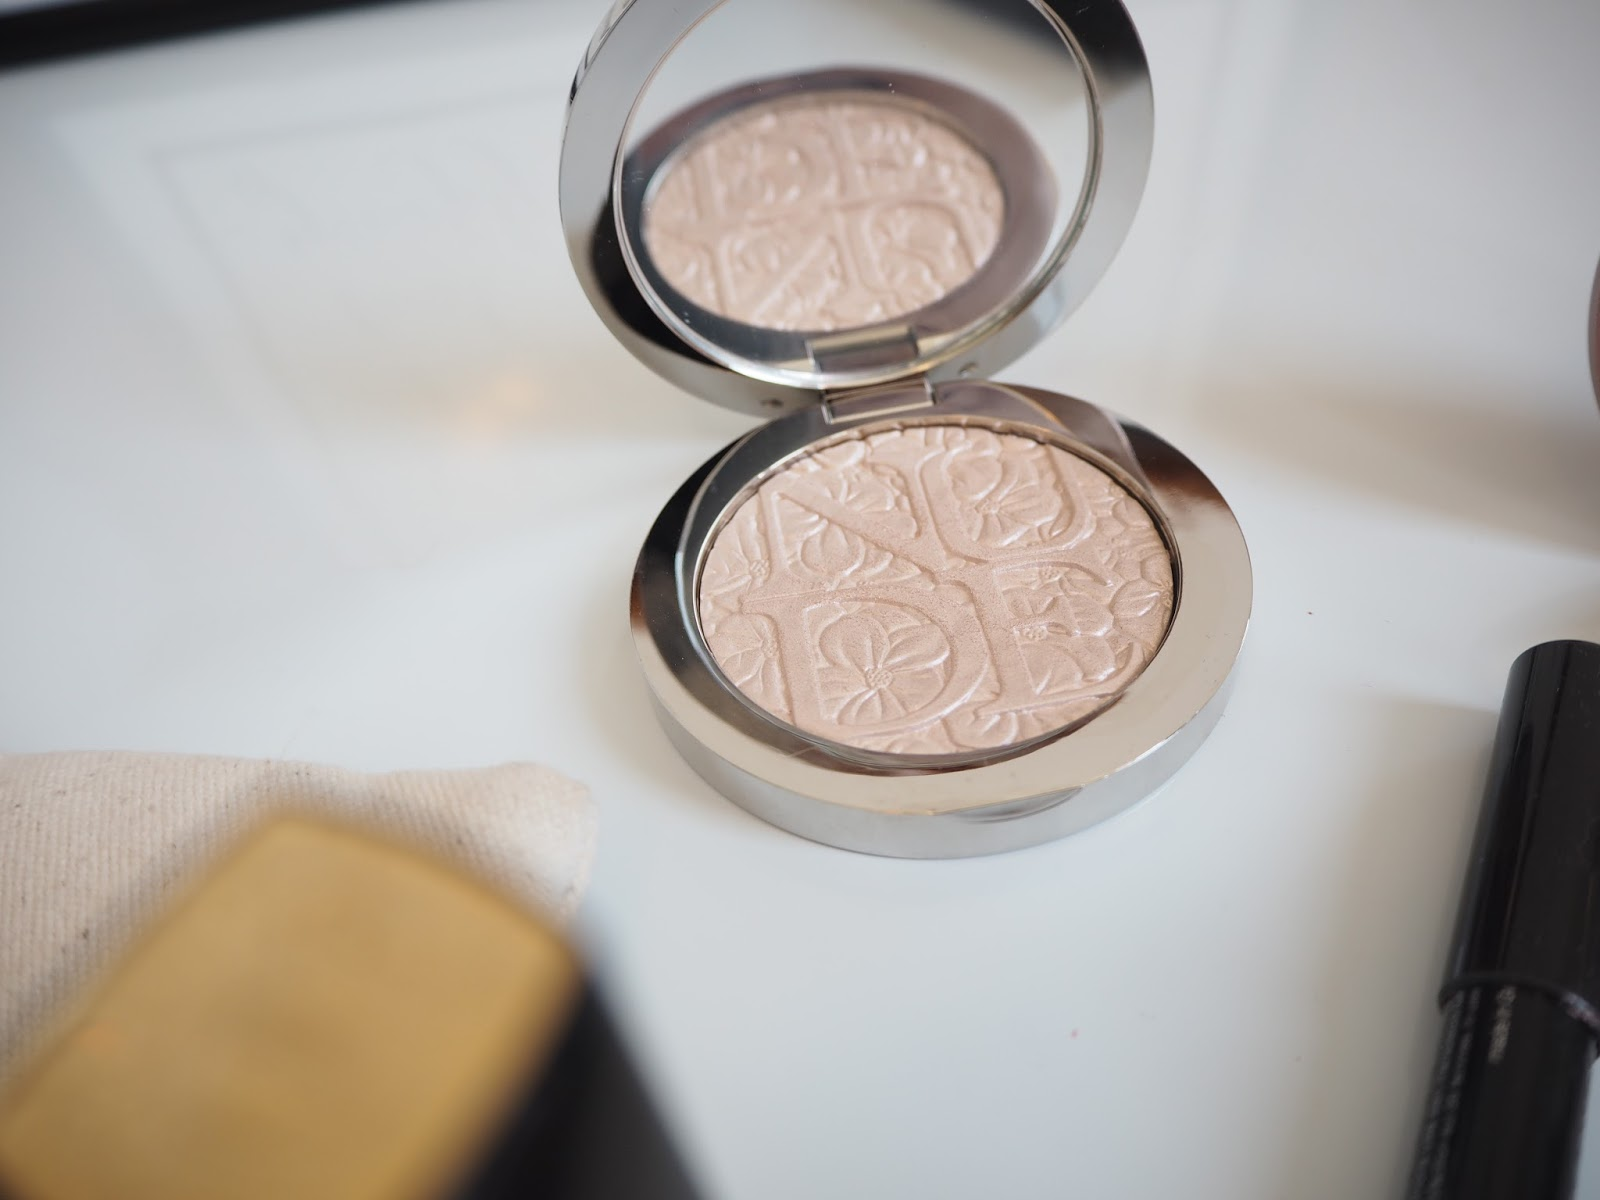 Dior Glowing Gardens-Glowing Pink